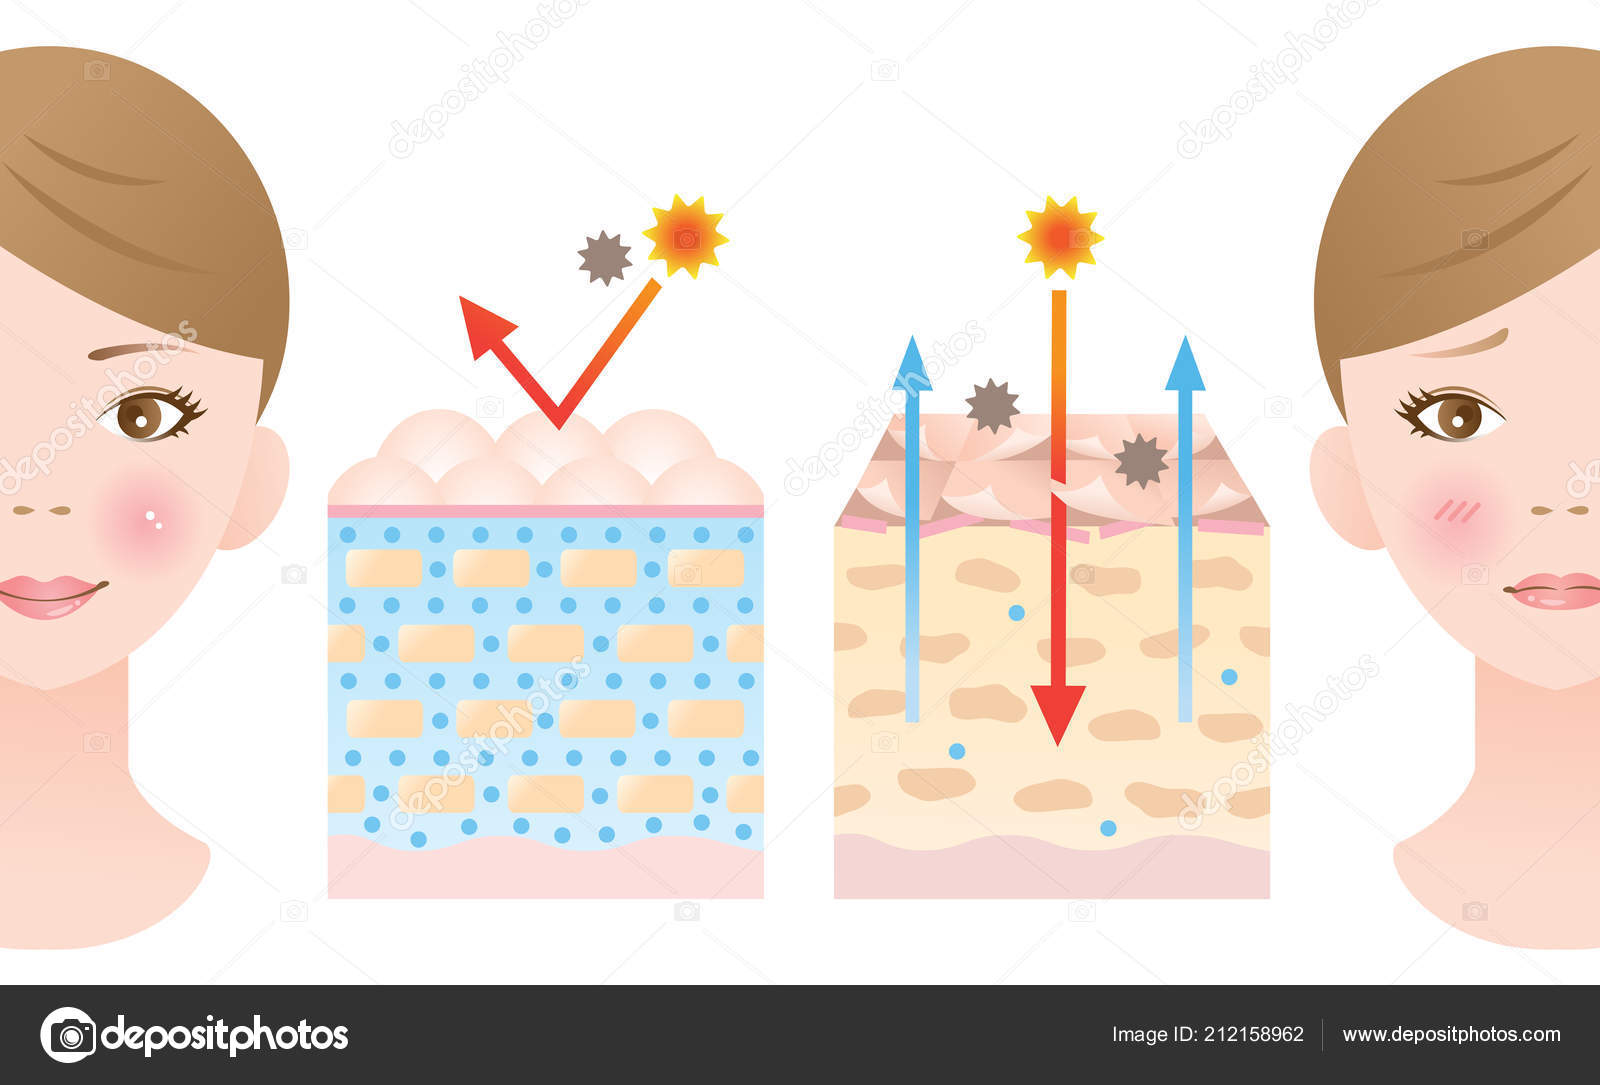 hight resolution of normal dry skin diagram illustration woman beauty skin care concept stock vector